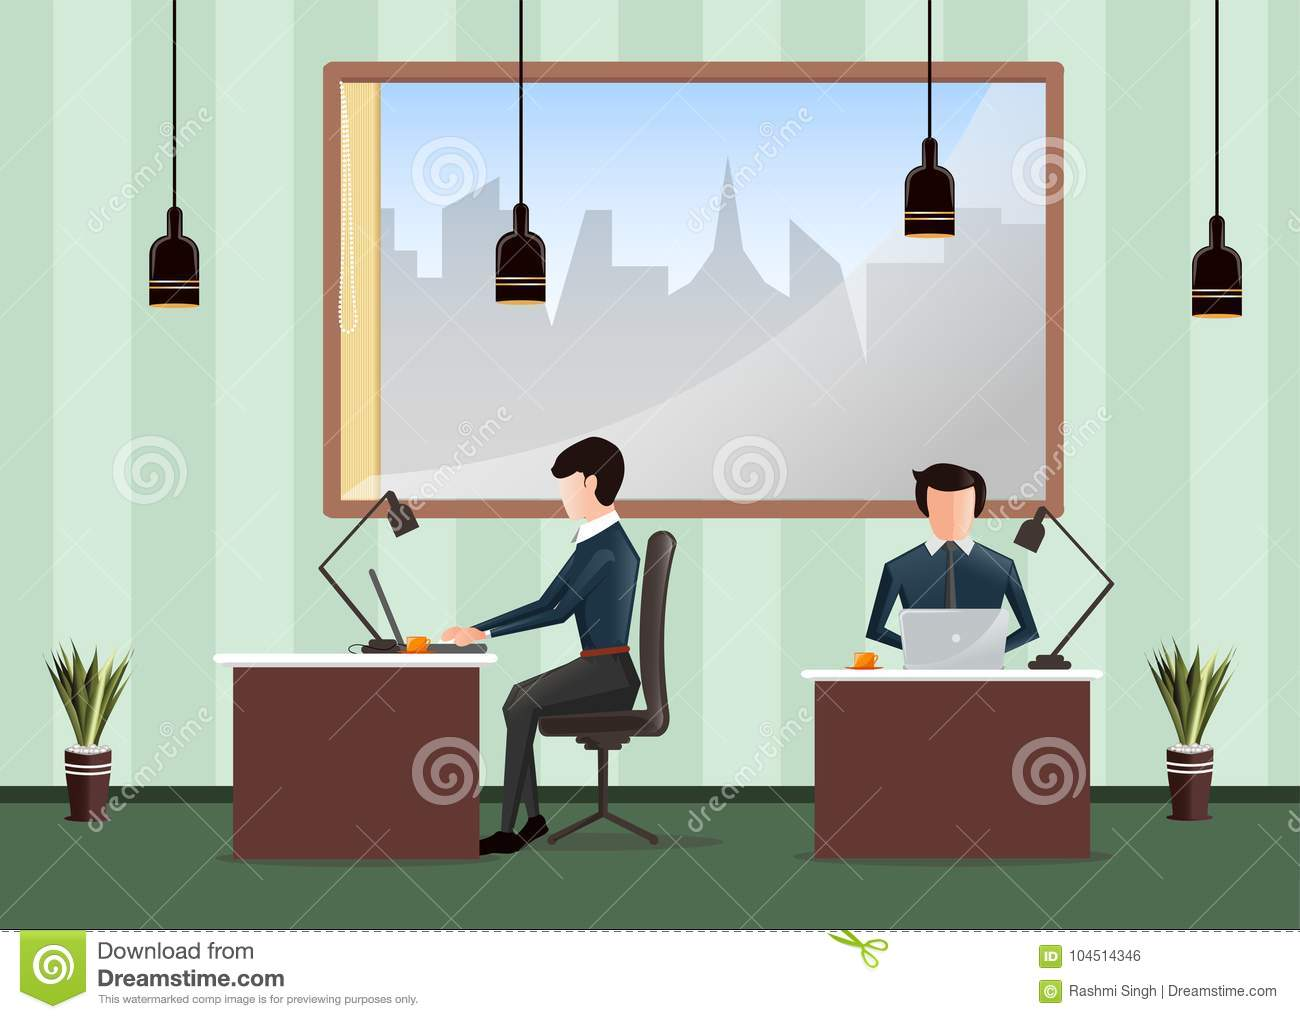 People Working In The Office. Workers Sitting At Desks And Work On